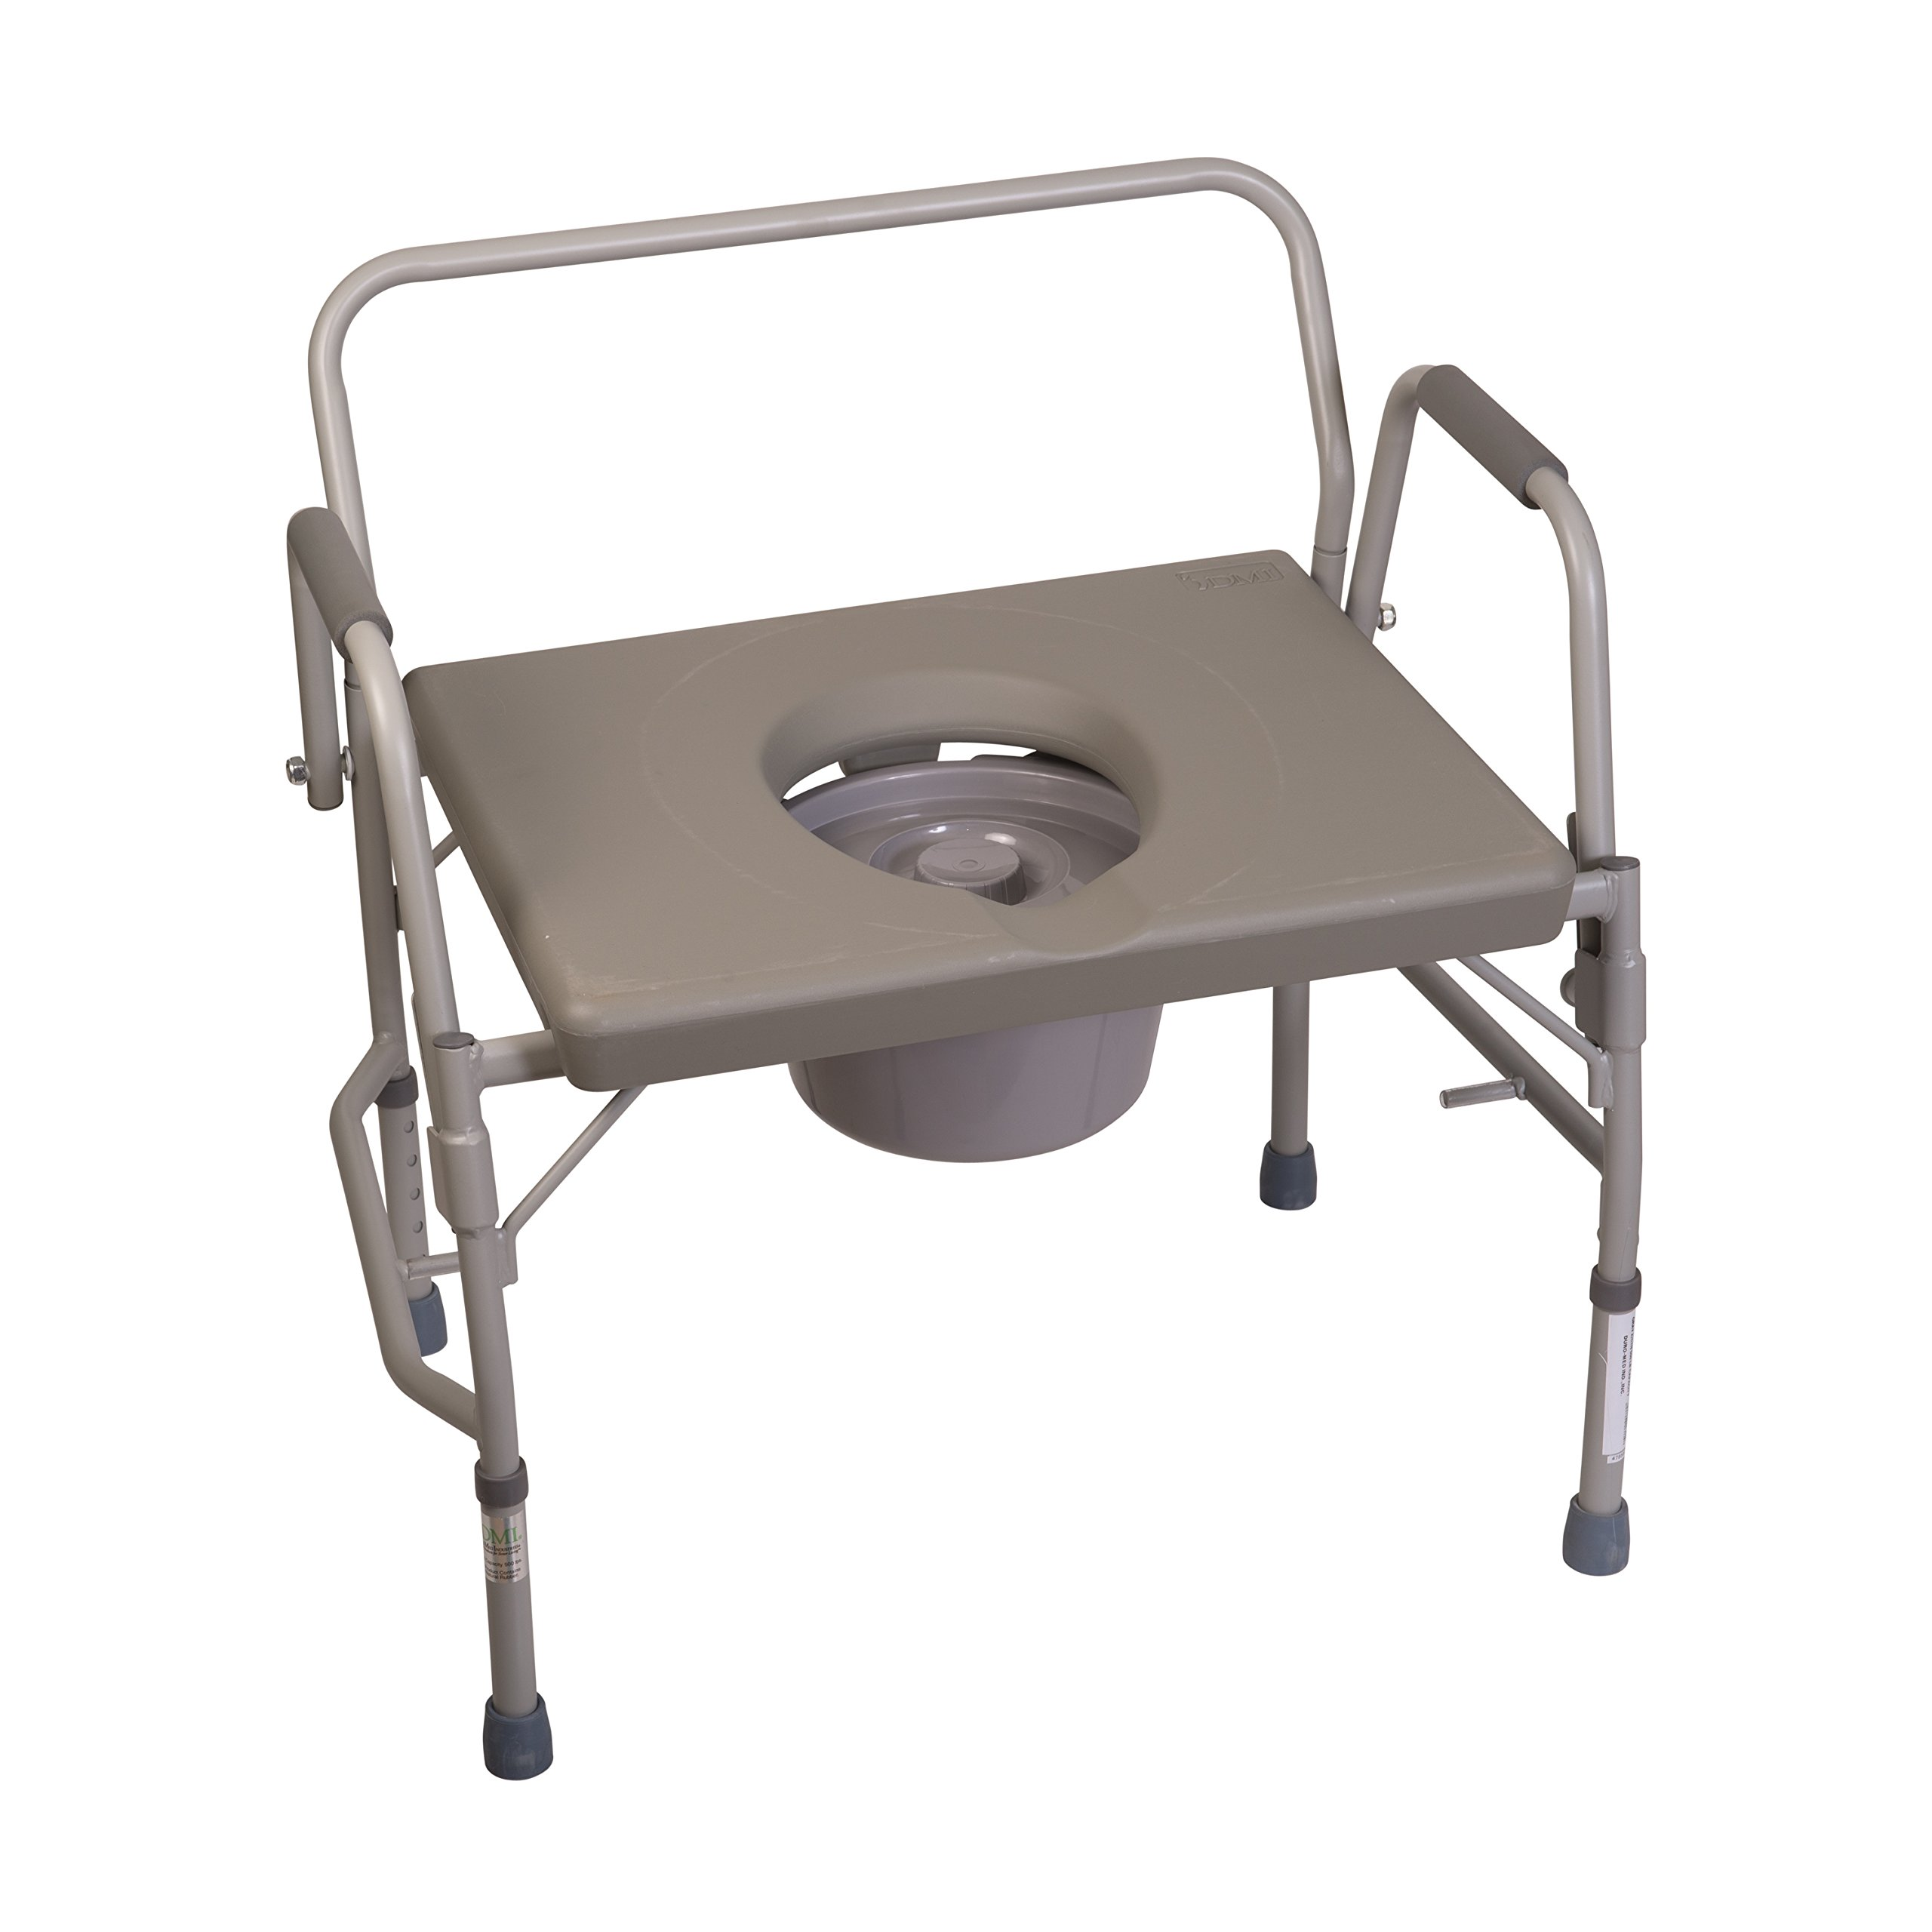 Duro-Med Commode Chair, Heavy-Duty Steel Commode Toilet Chair, Toilet Safety Frame by HealthSmart